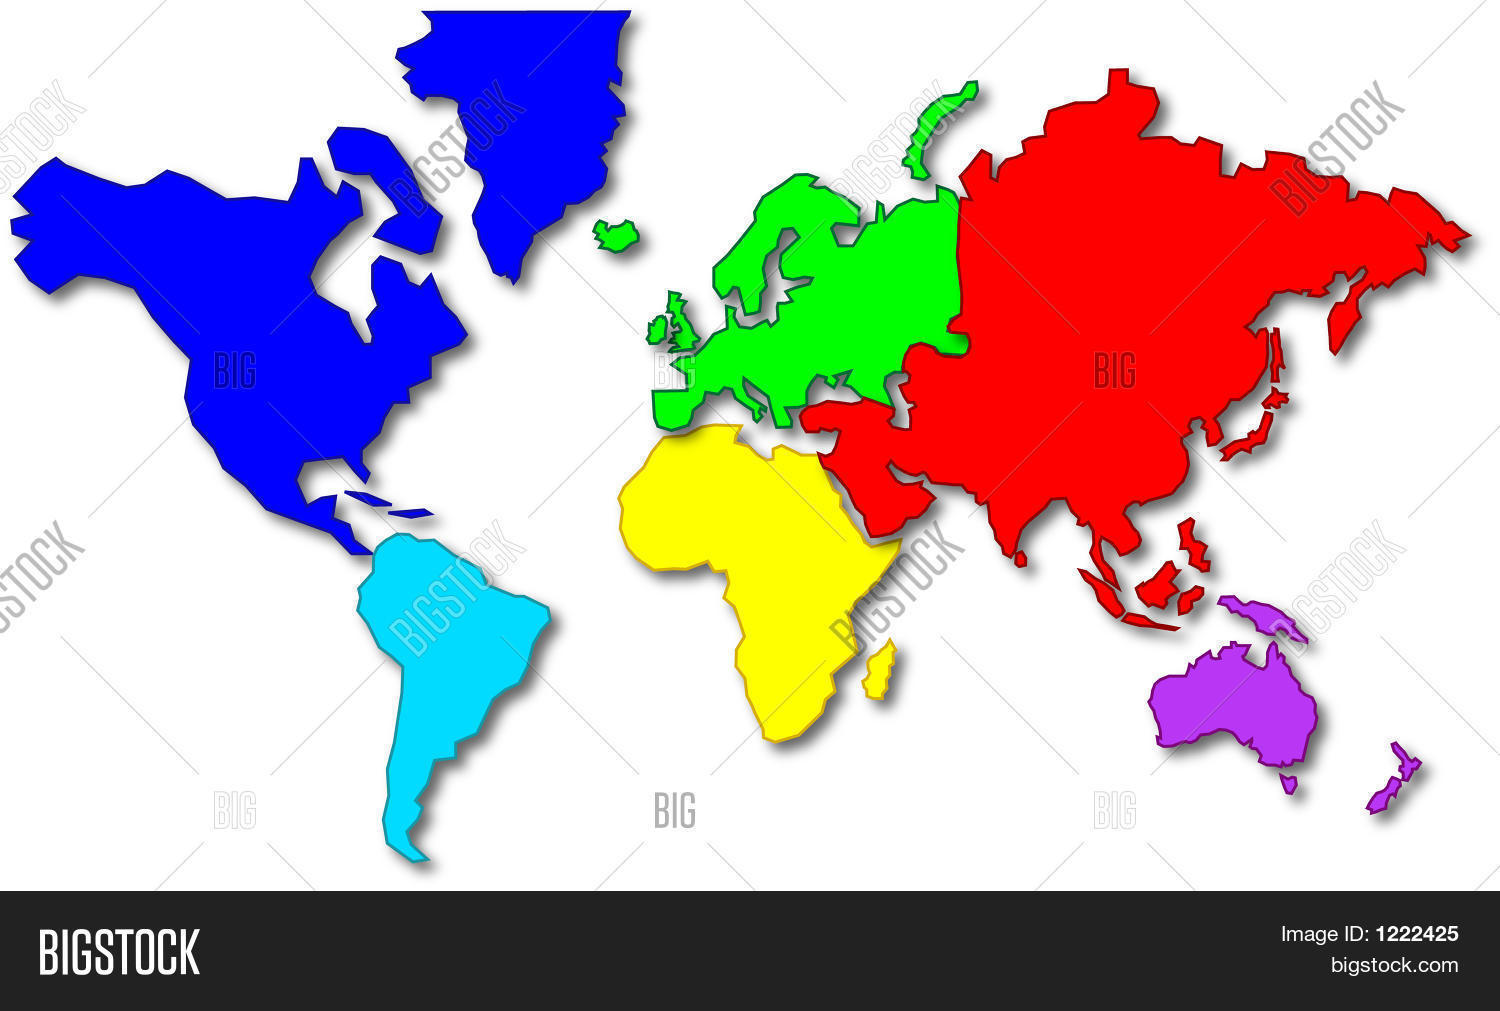 cartoon world map image photo free trial bigstock rh bigstockphoto com cartoon world map clipart cartoon world map clipart